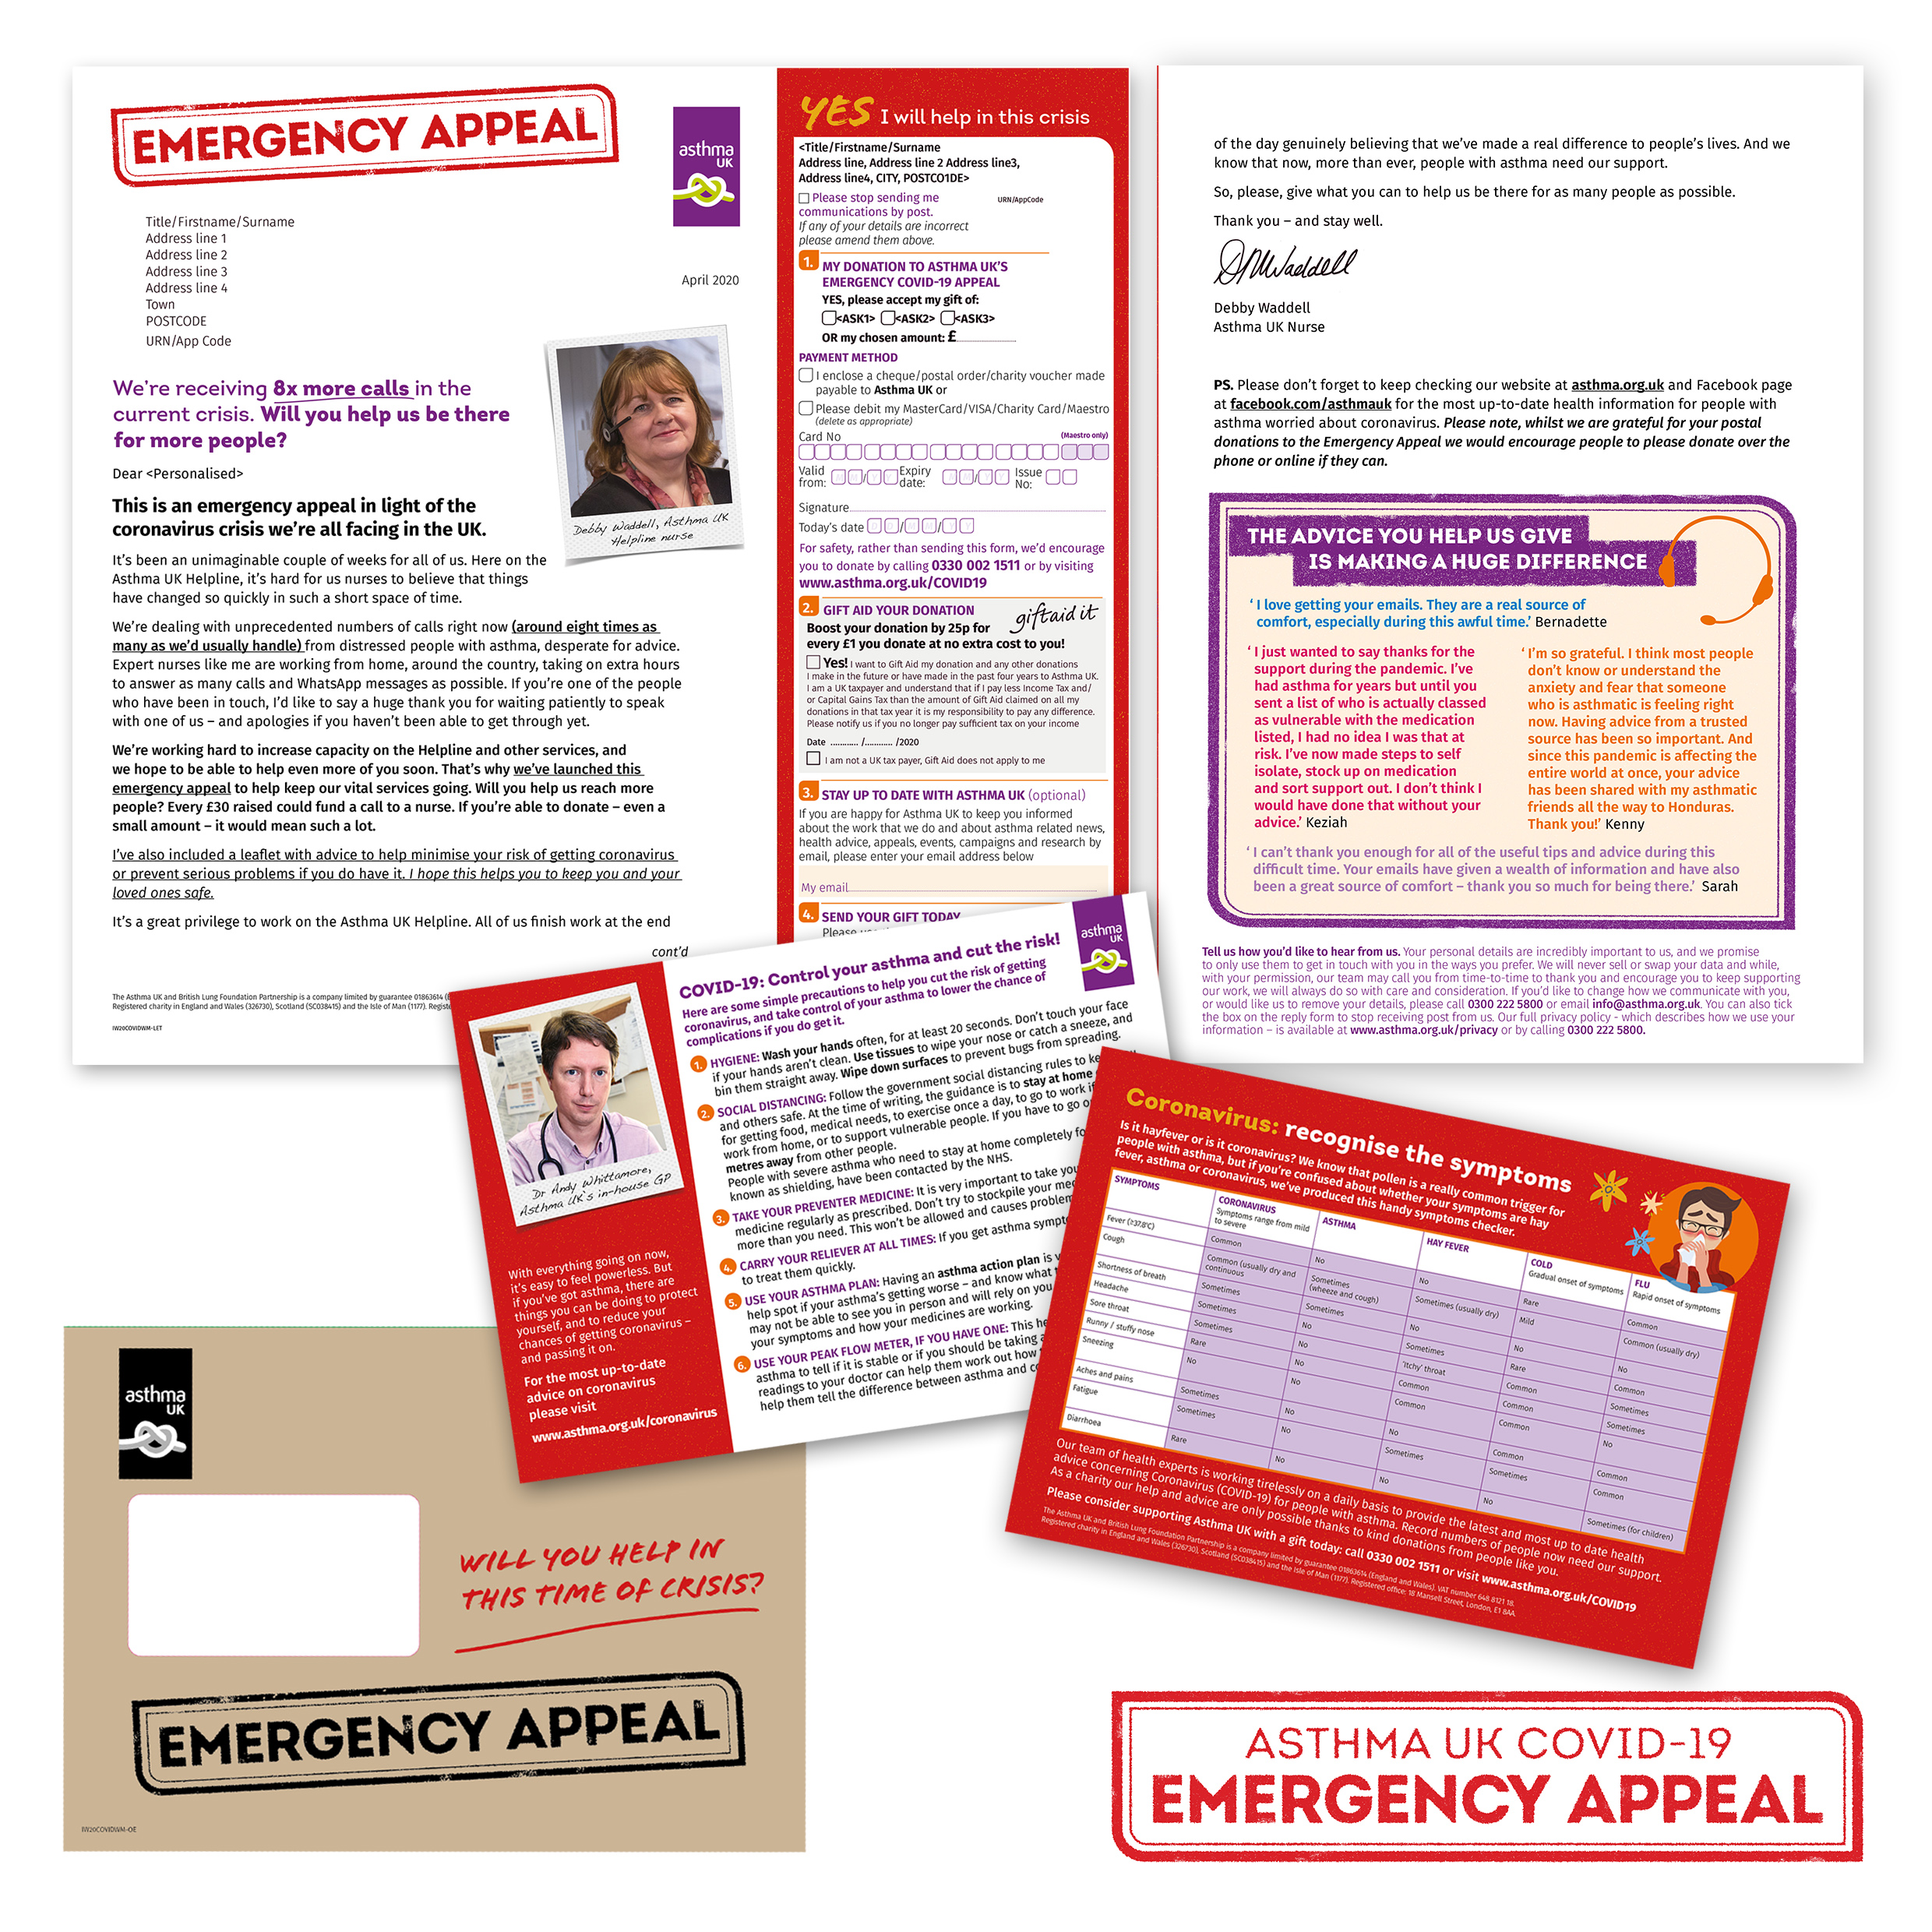 Covid-19 Asthma UK Emergency Appeal